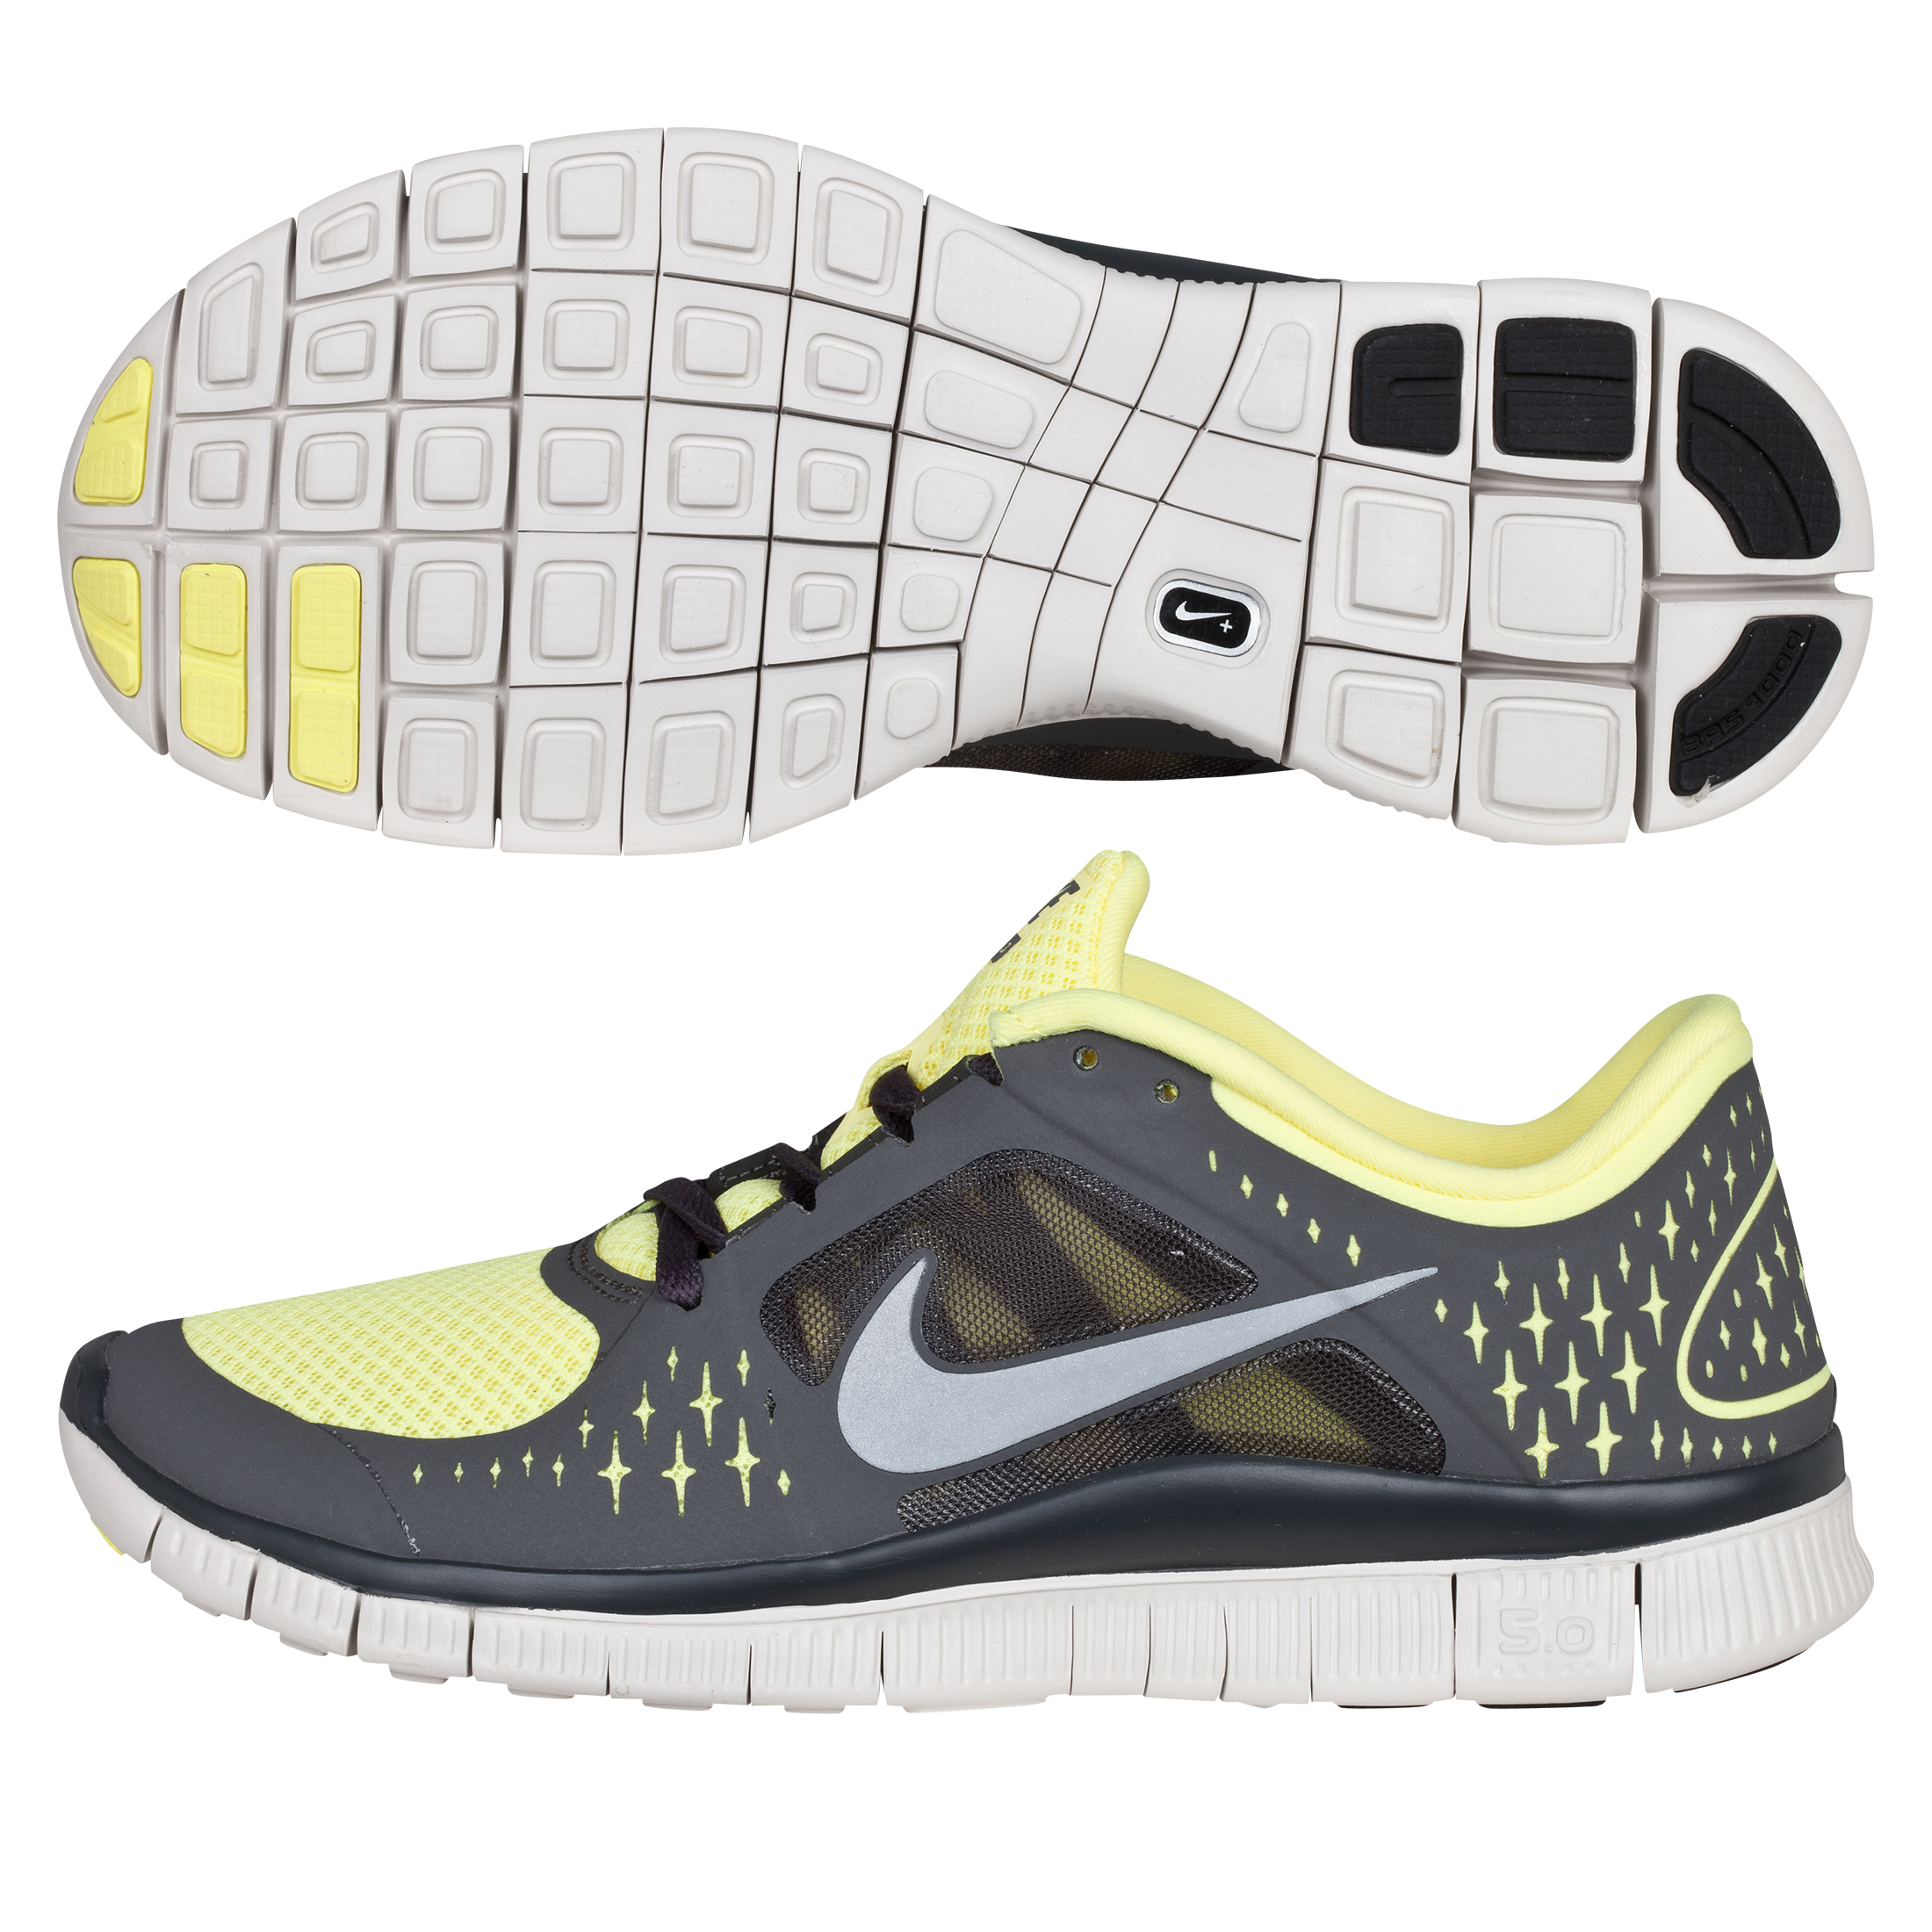 Nike Free Run +3 Barefoot Trainer - Electric Yellow/Reflective Silver - Womens